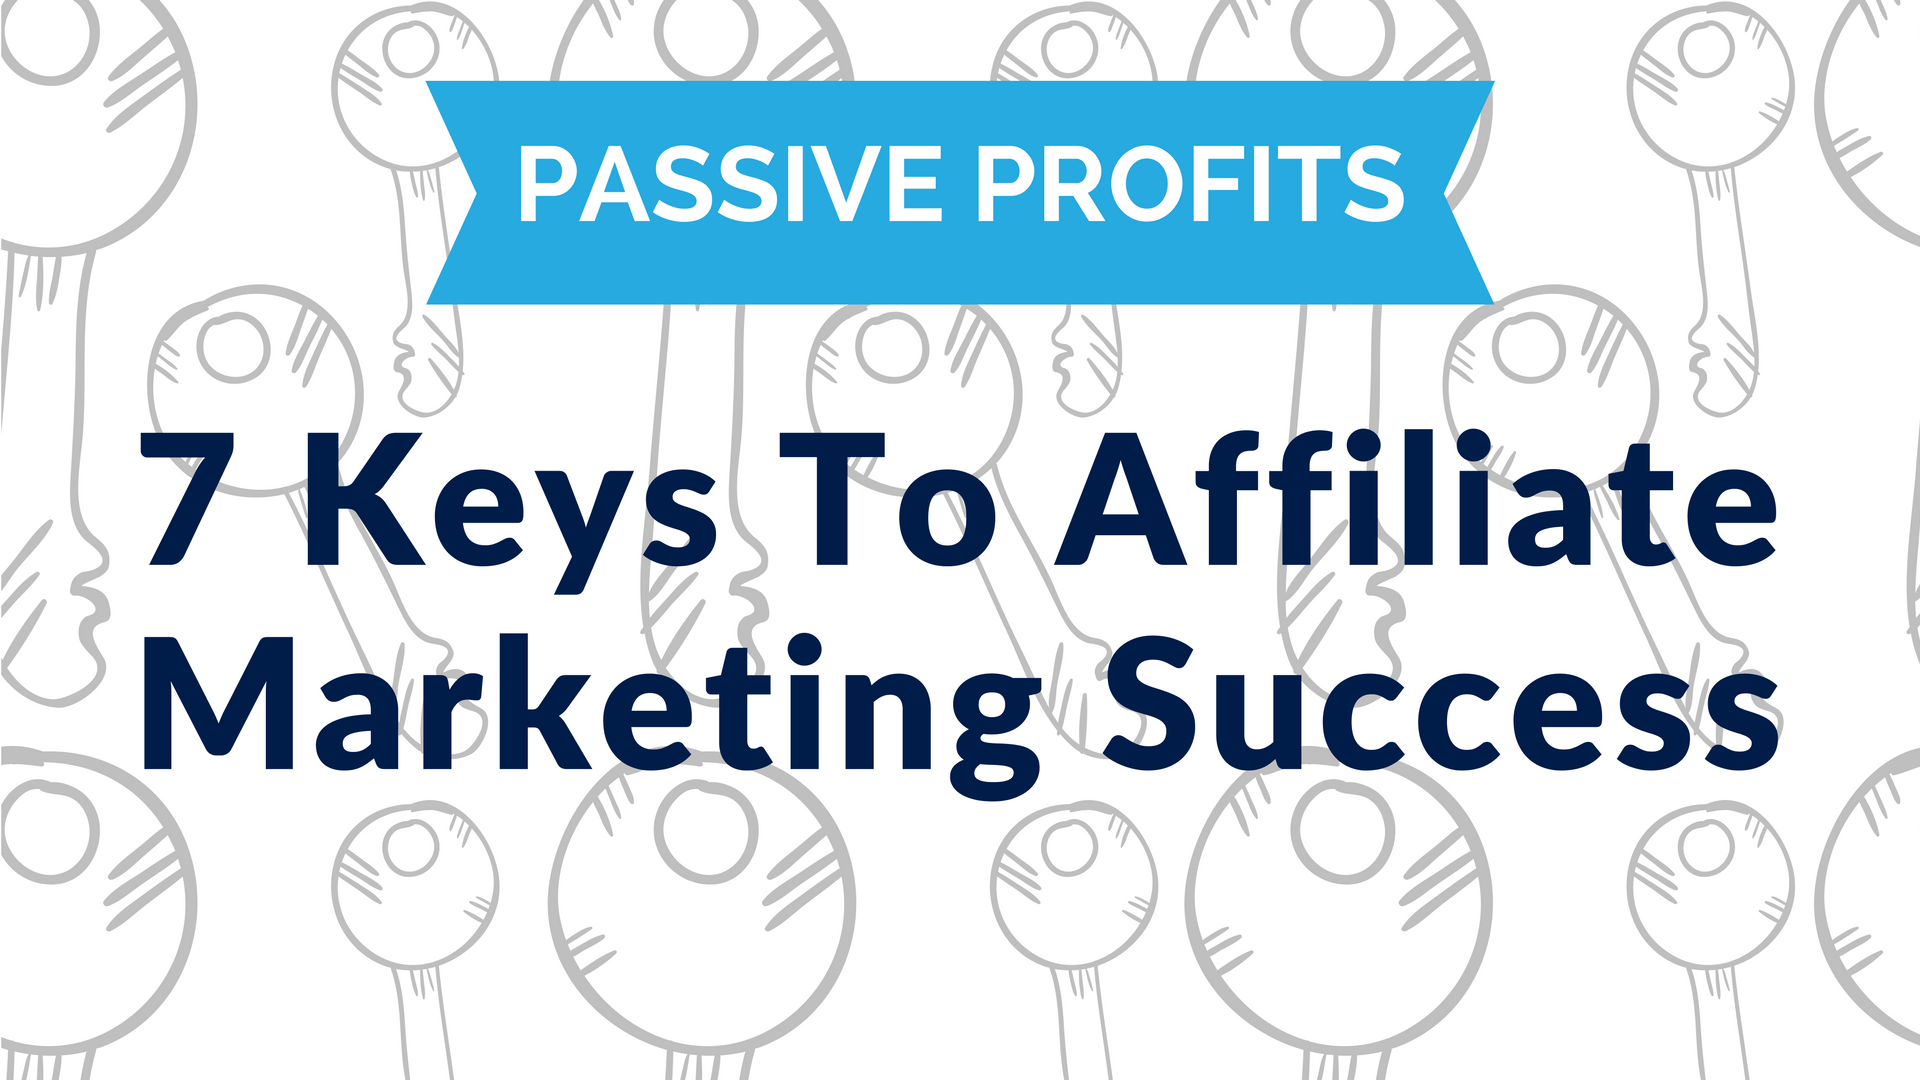 passive profits 7 keys to affiliate marketing successs